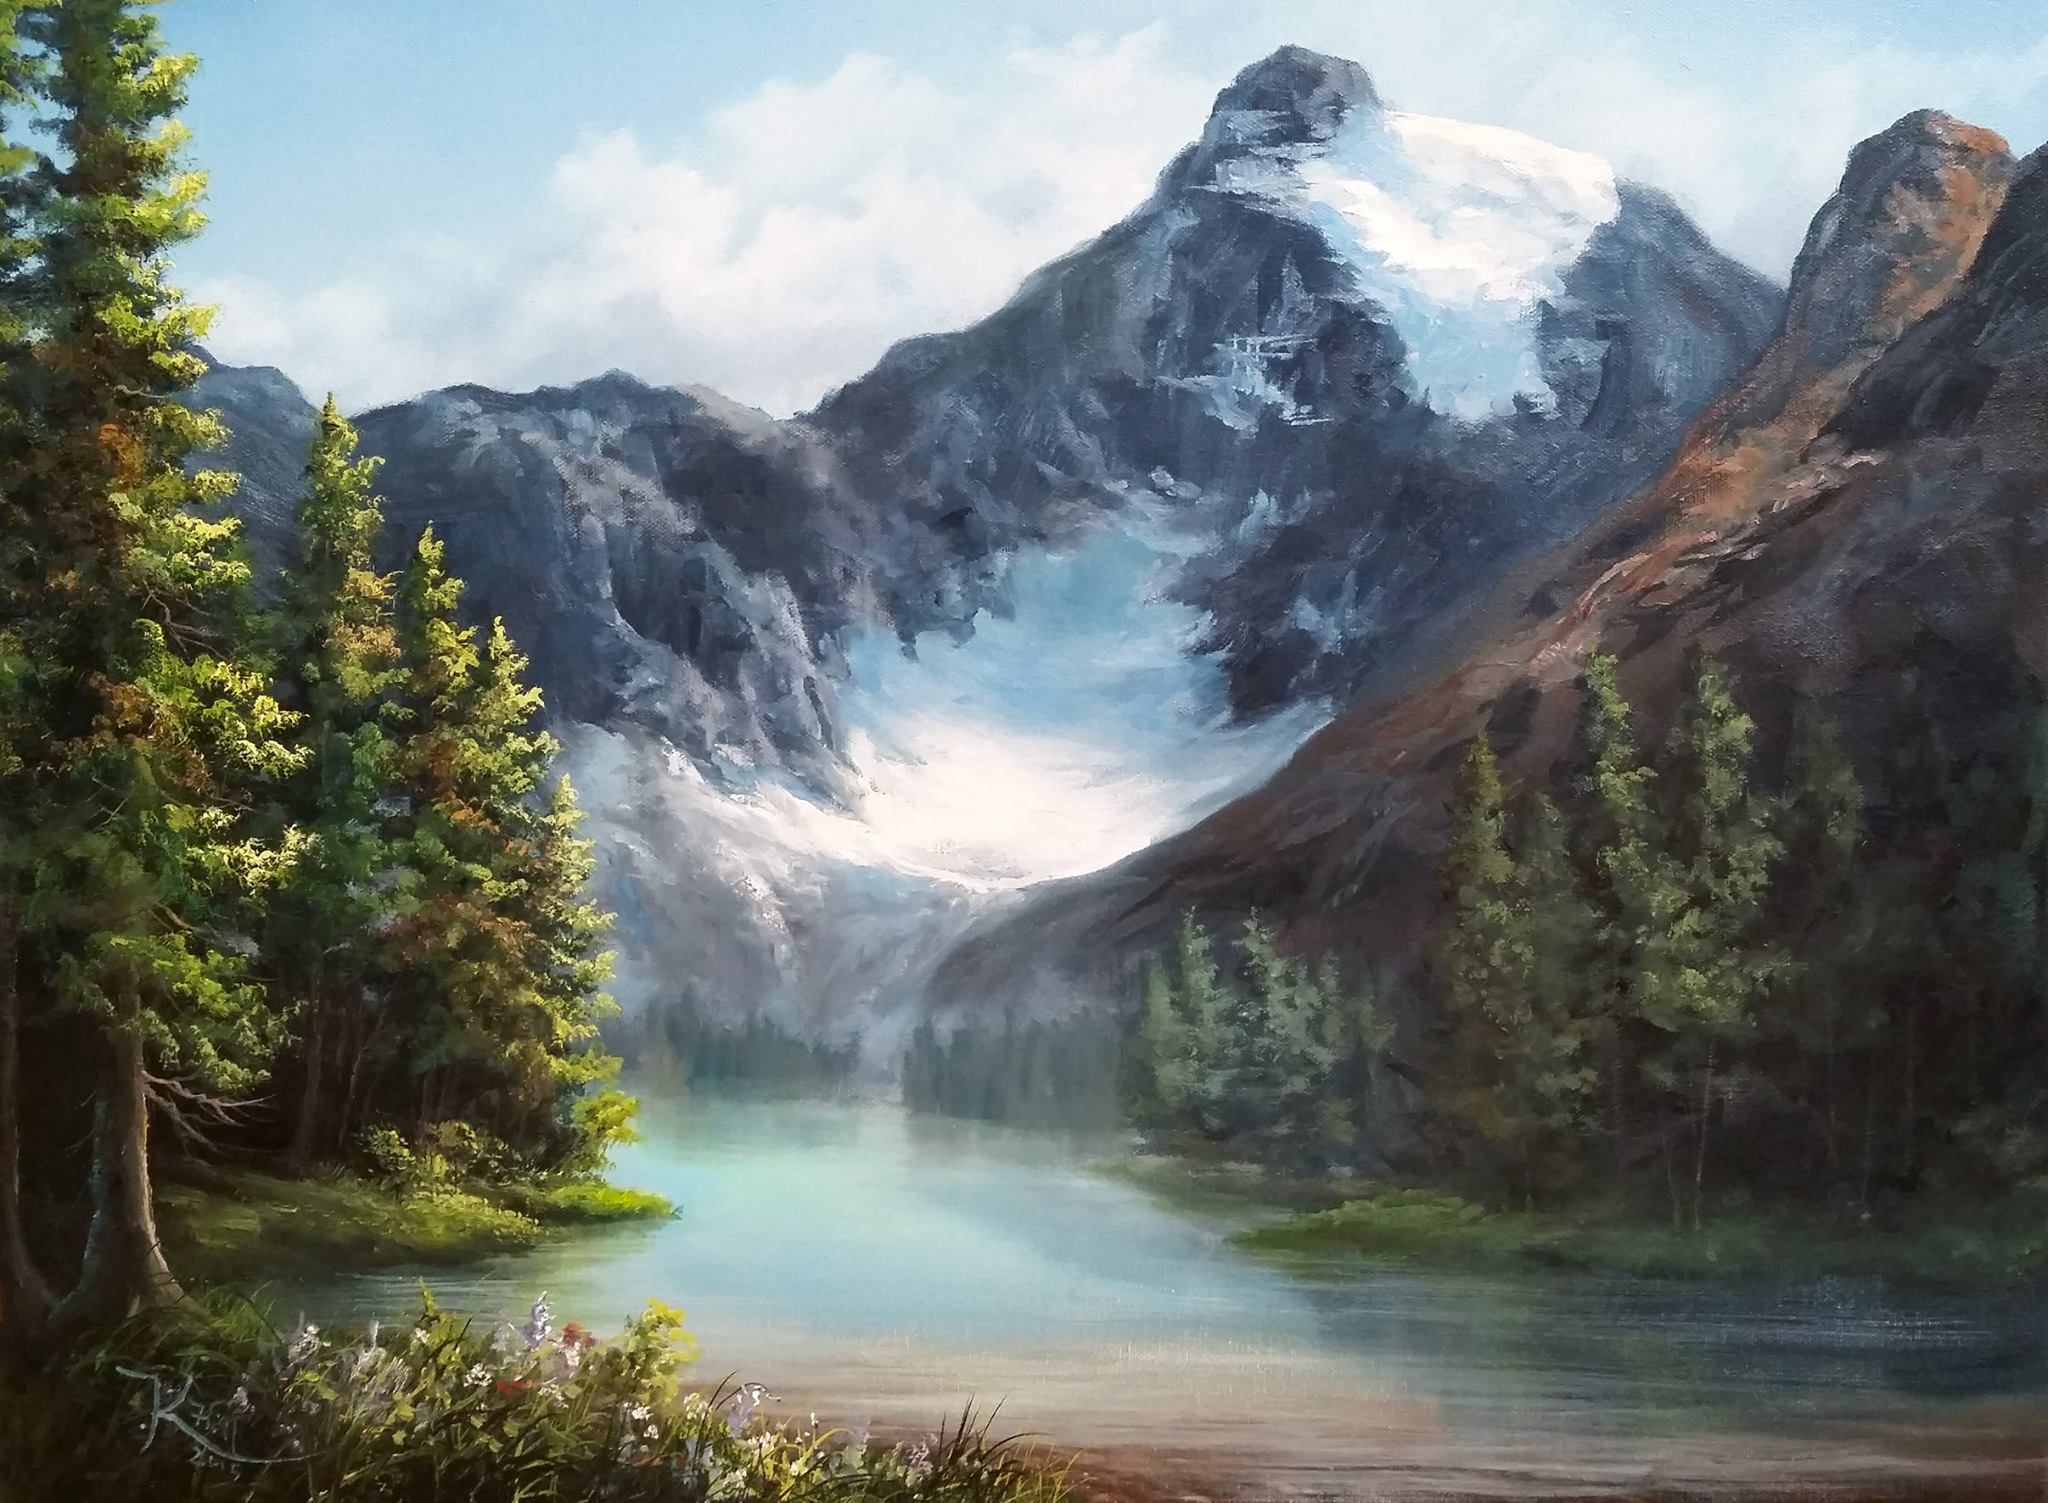 """Canadian Glacier"" by Kevin Hill  Check out my YouTube channel: KevinOilPainting    For more information about brushes, DVDs, events, and more go to: www.paintwithkevin.com"